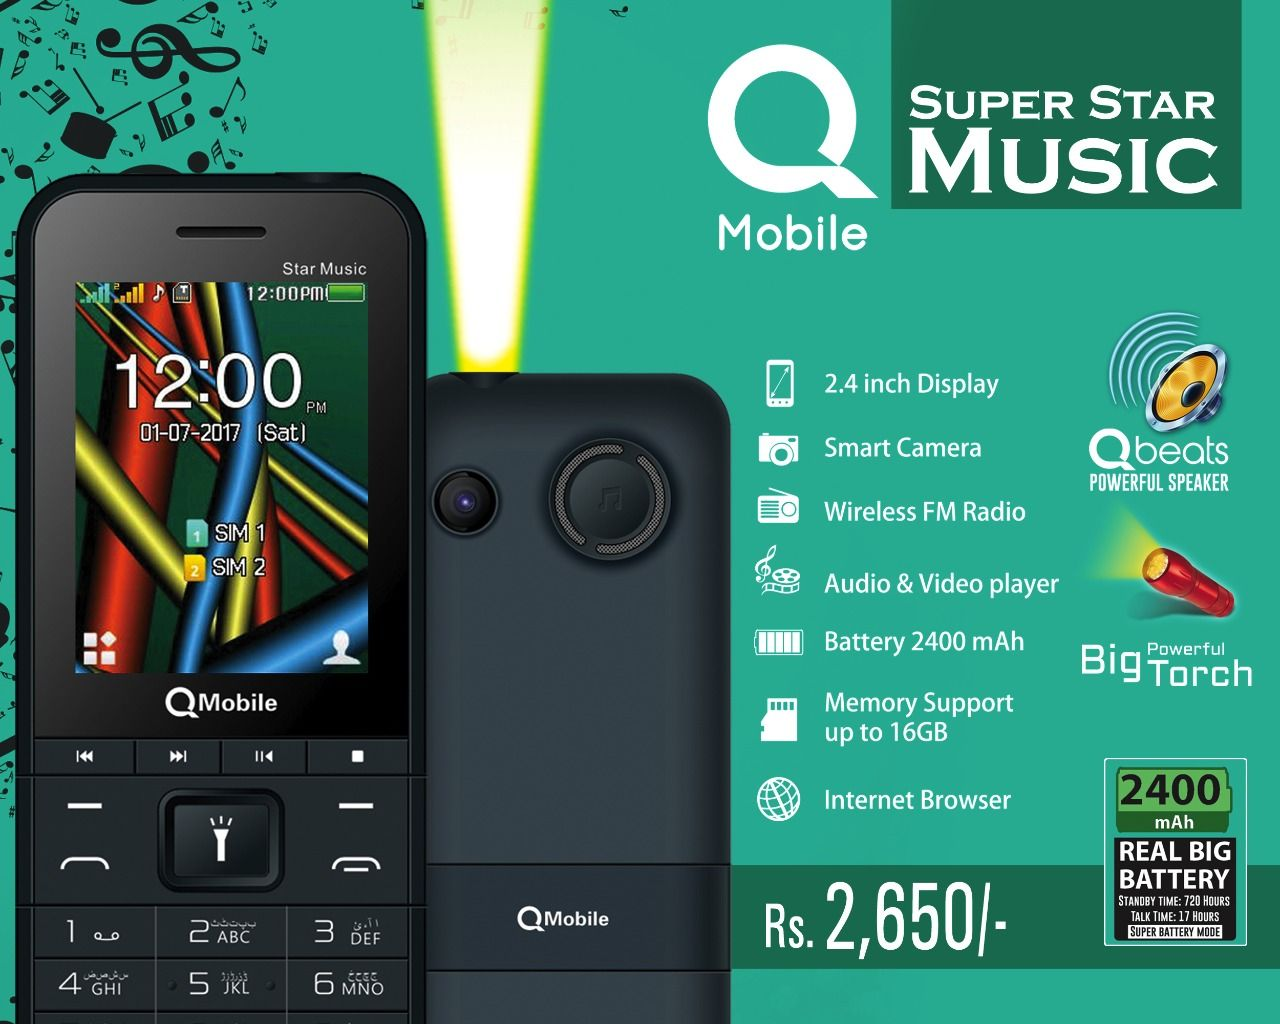 QMobile Super Star Music Price in Pakistan Specfication and